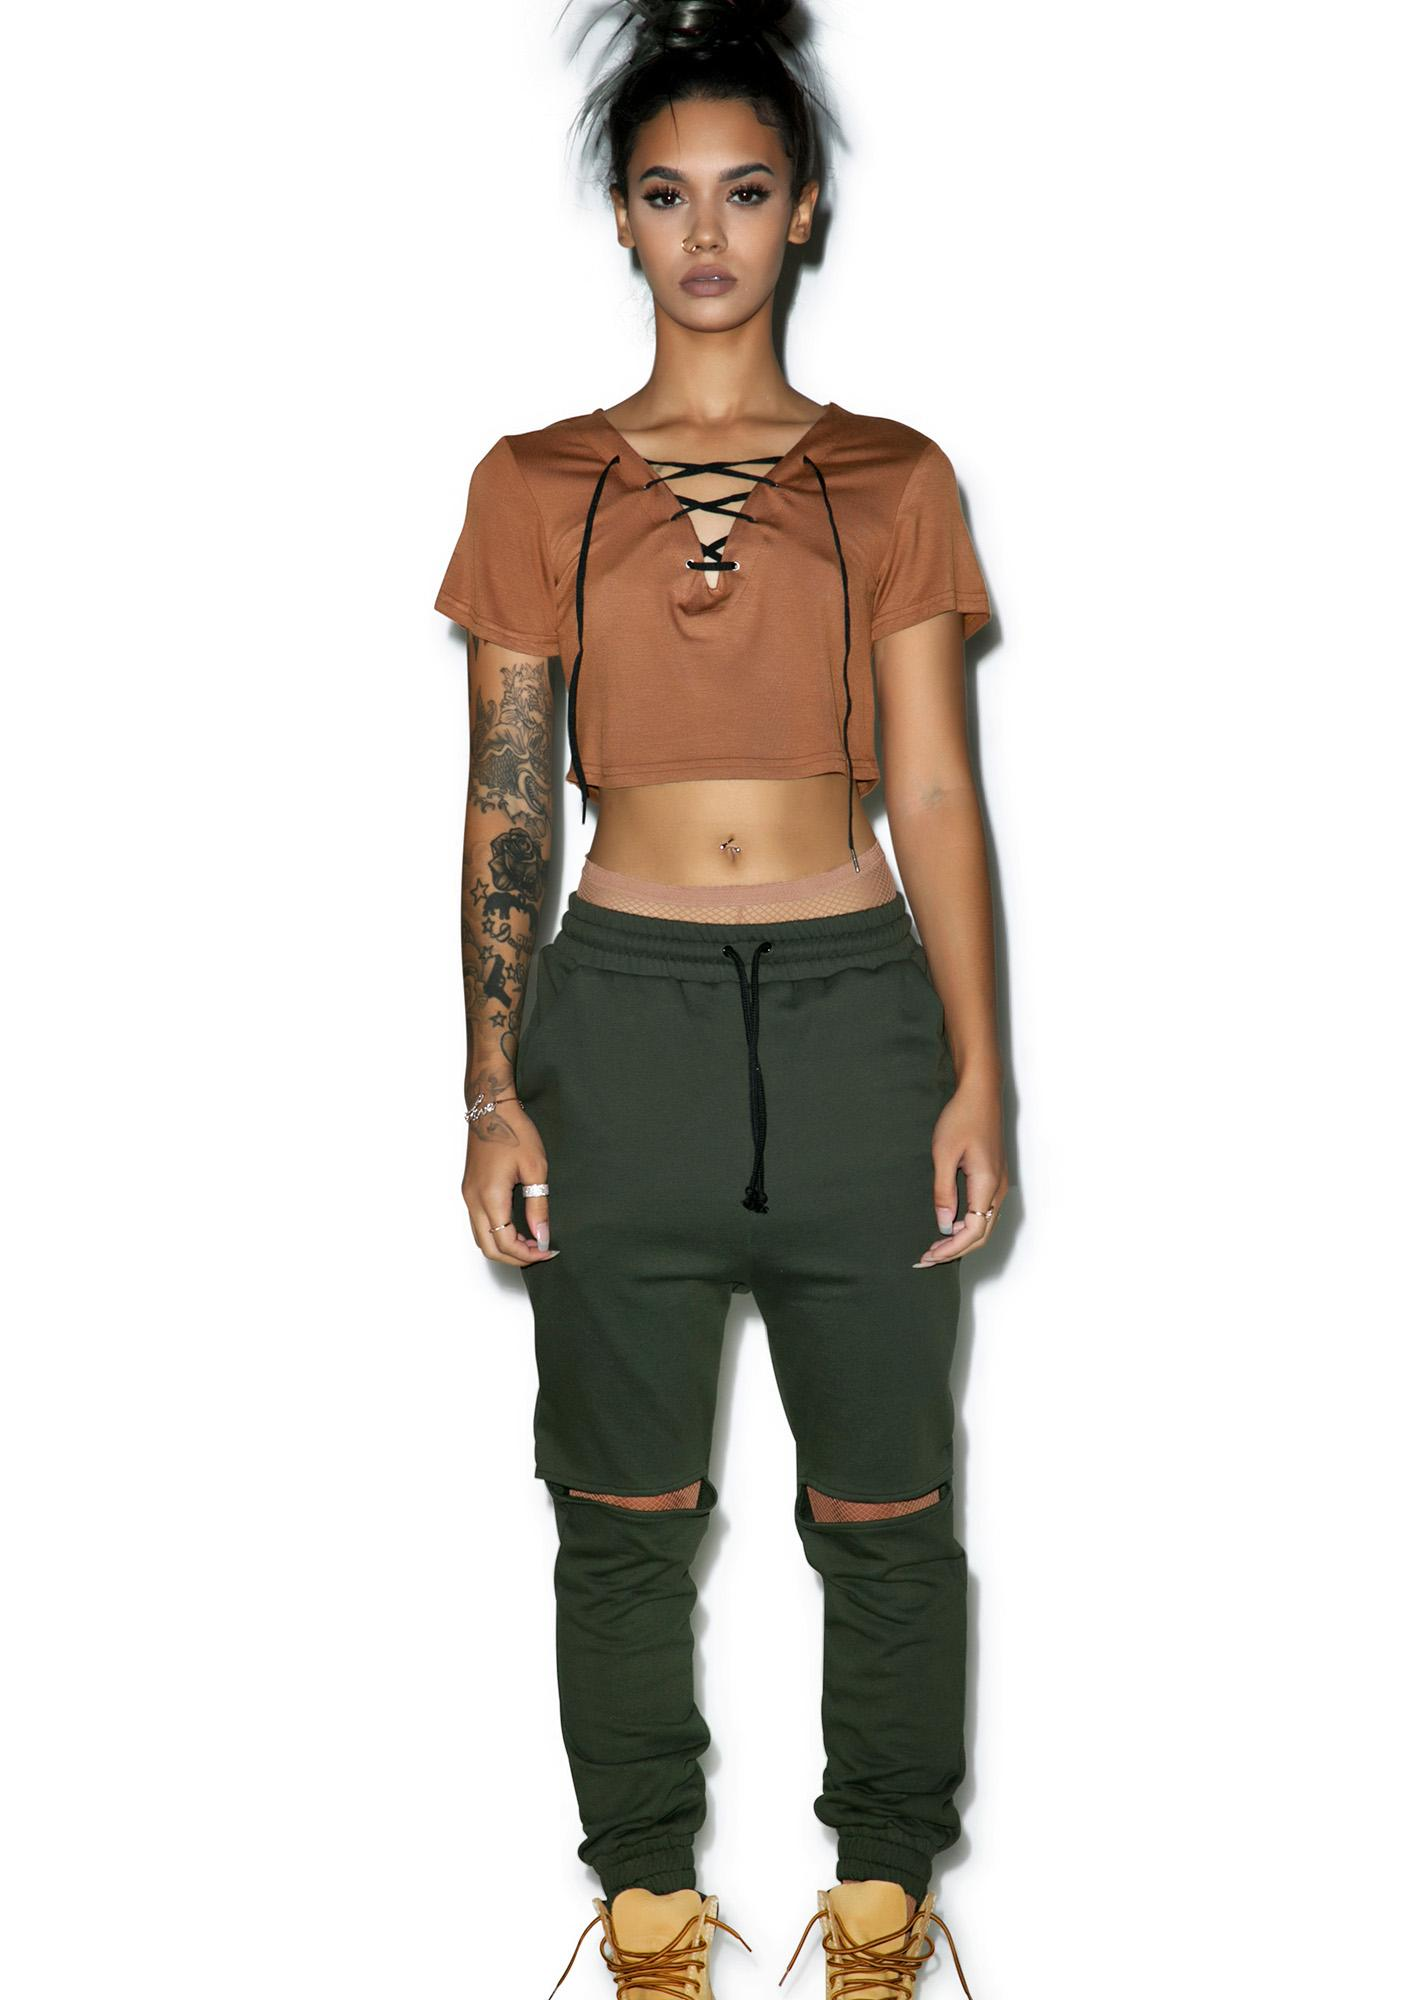 Durango Lace-Up Crop Top